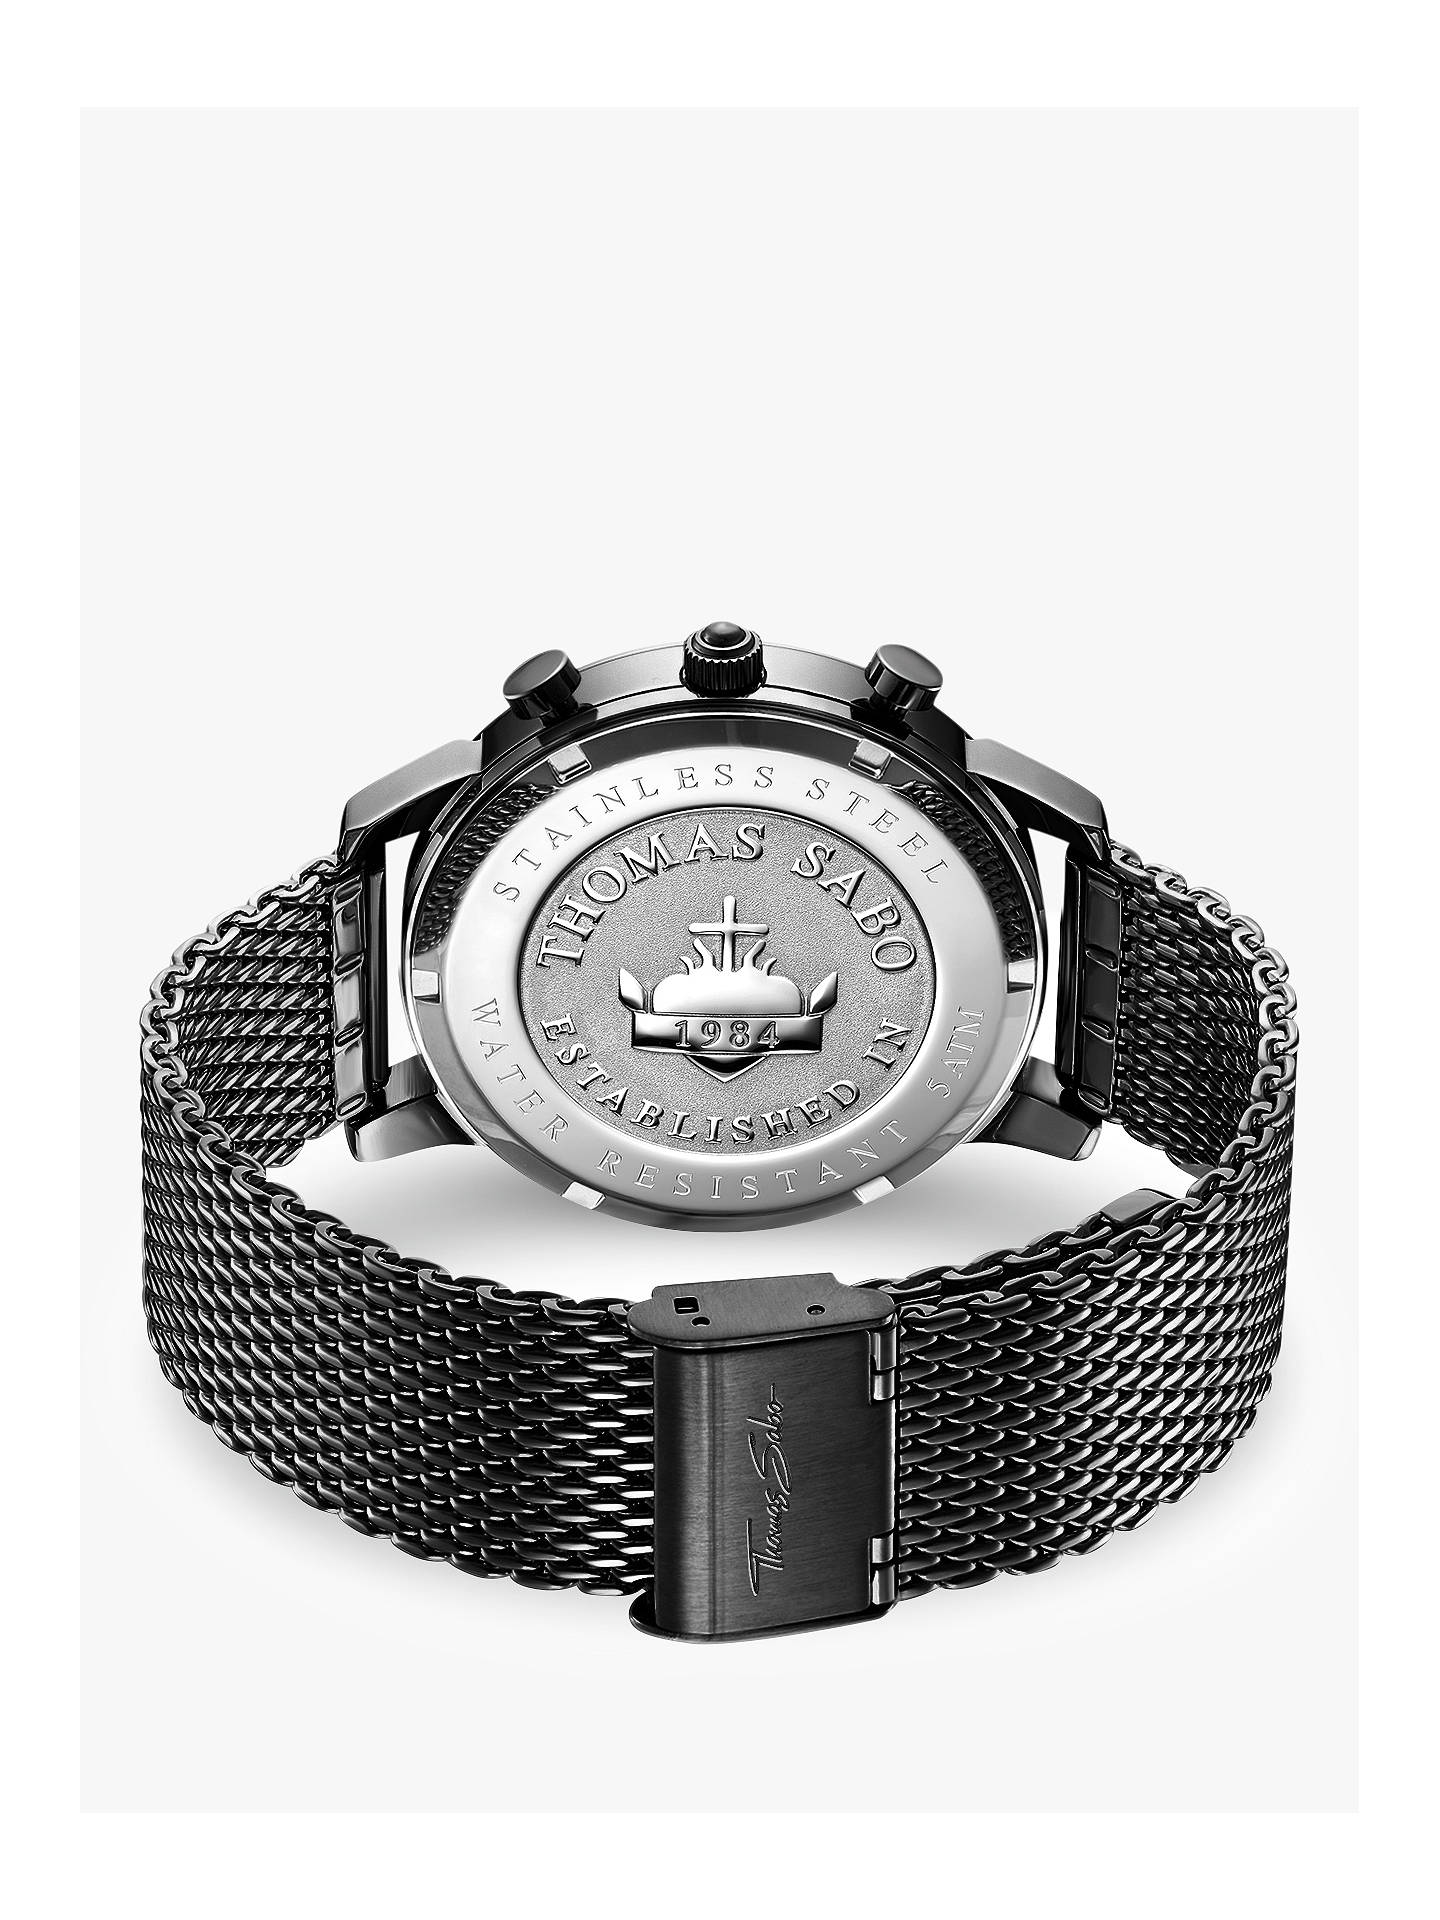 BuyTHOMAS SABO Men's Rebel Spirit Chronograph Mesh Bracelet Strap Watch, Black WA0291-287-203-42 Online at johnlewis.com